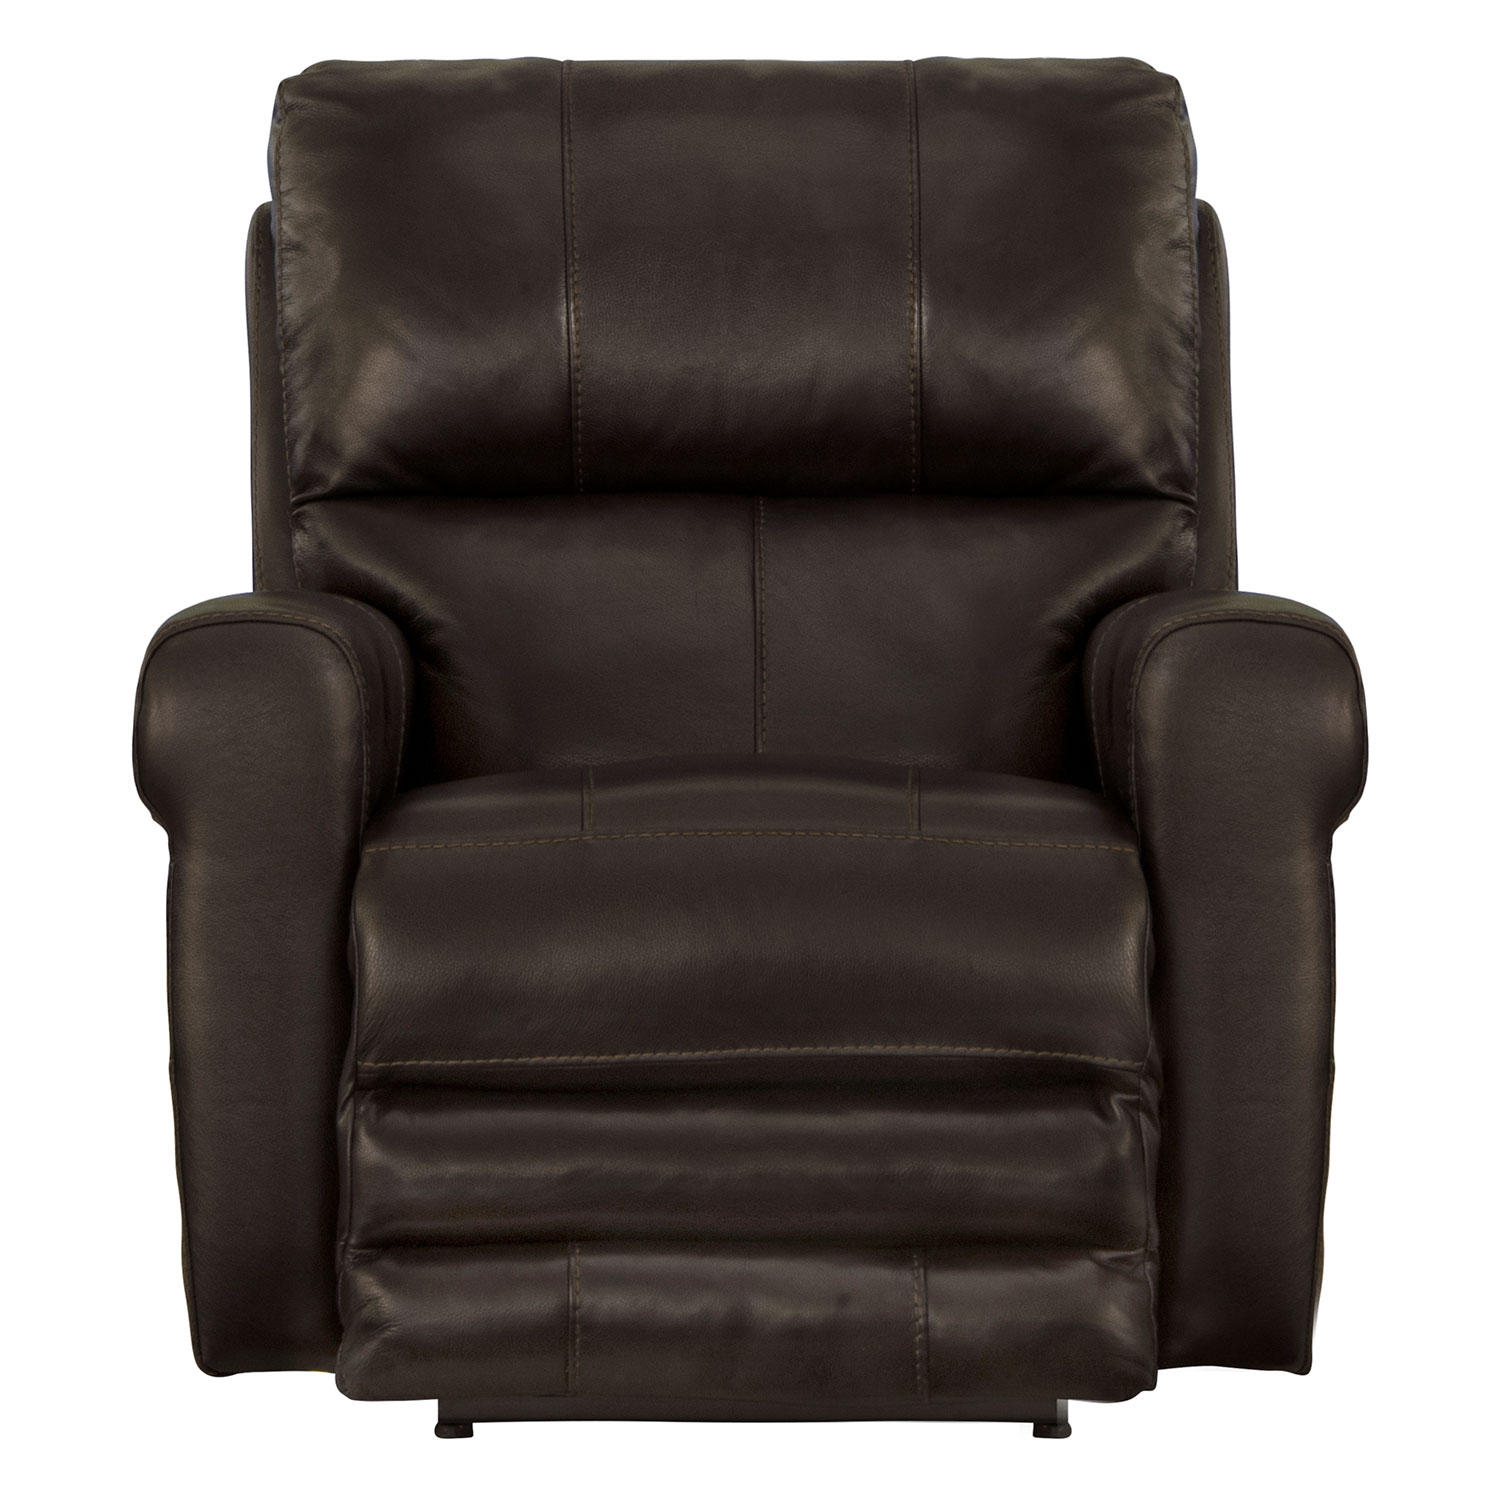 Jackson Furniture Calvin Italian Leather Power Recliner